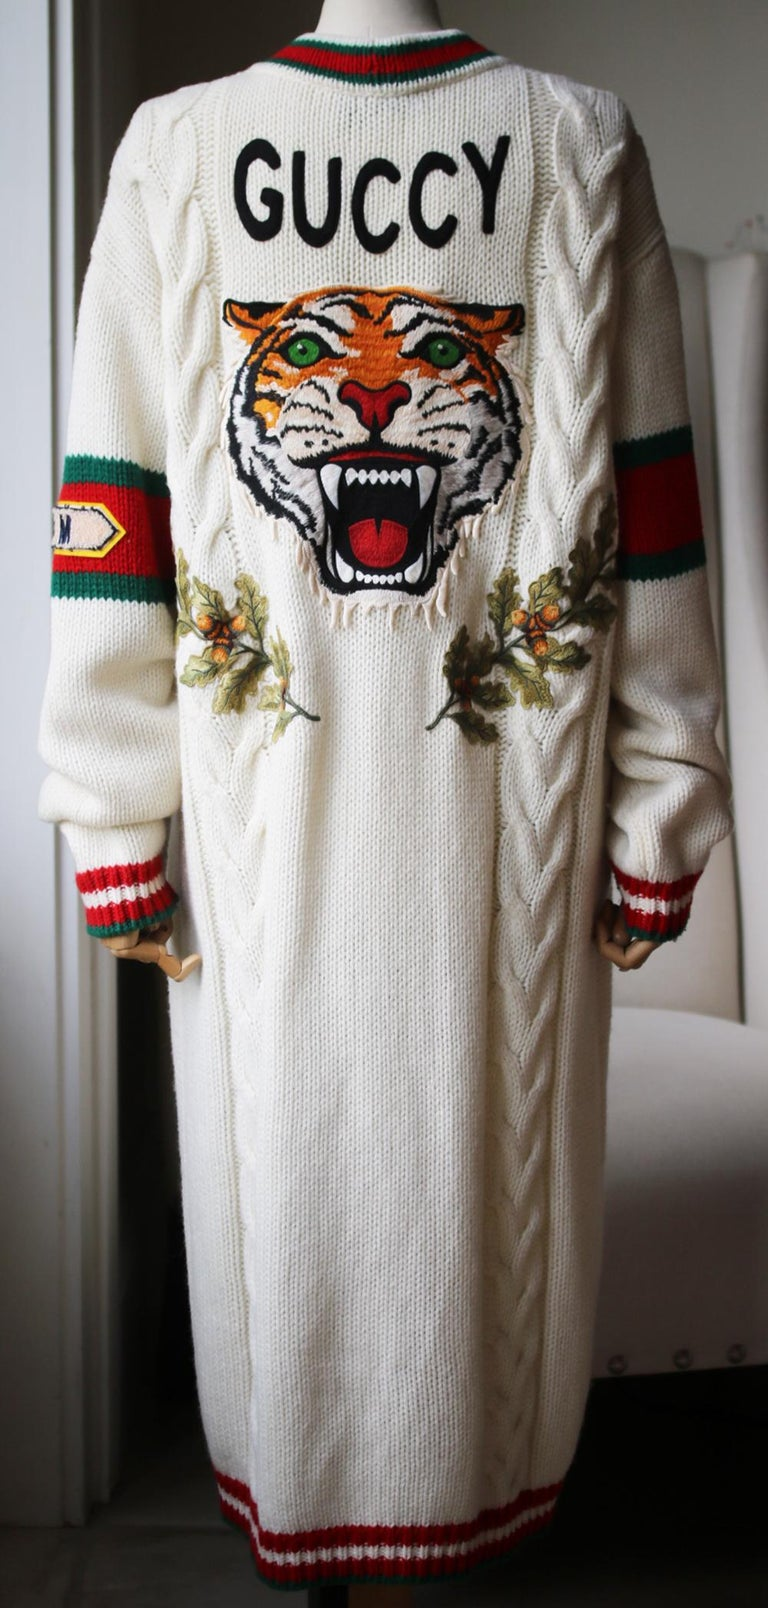 Gucci Appliquéd Cable-Knit Wool Cardigan In Excellent Condition In London, GB